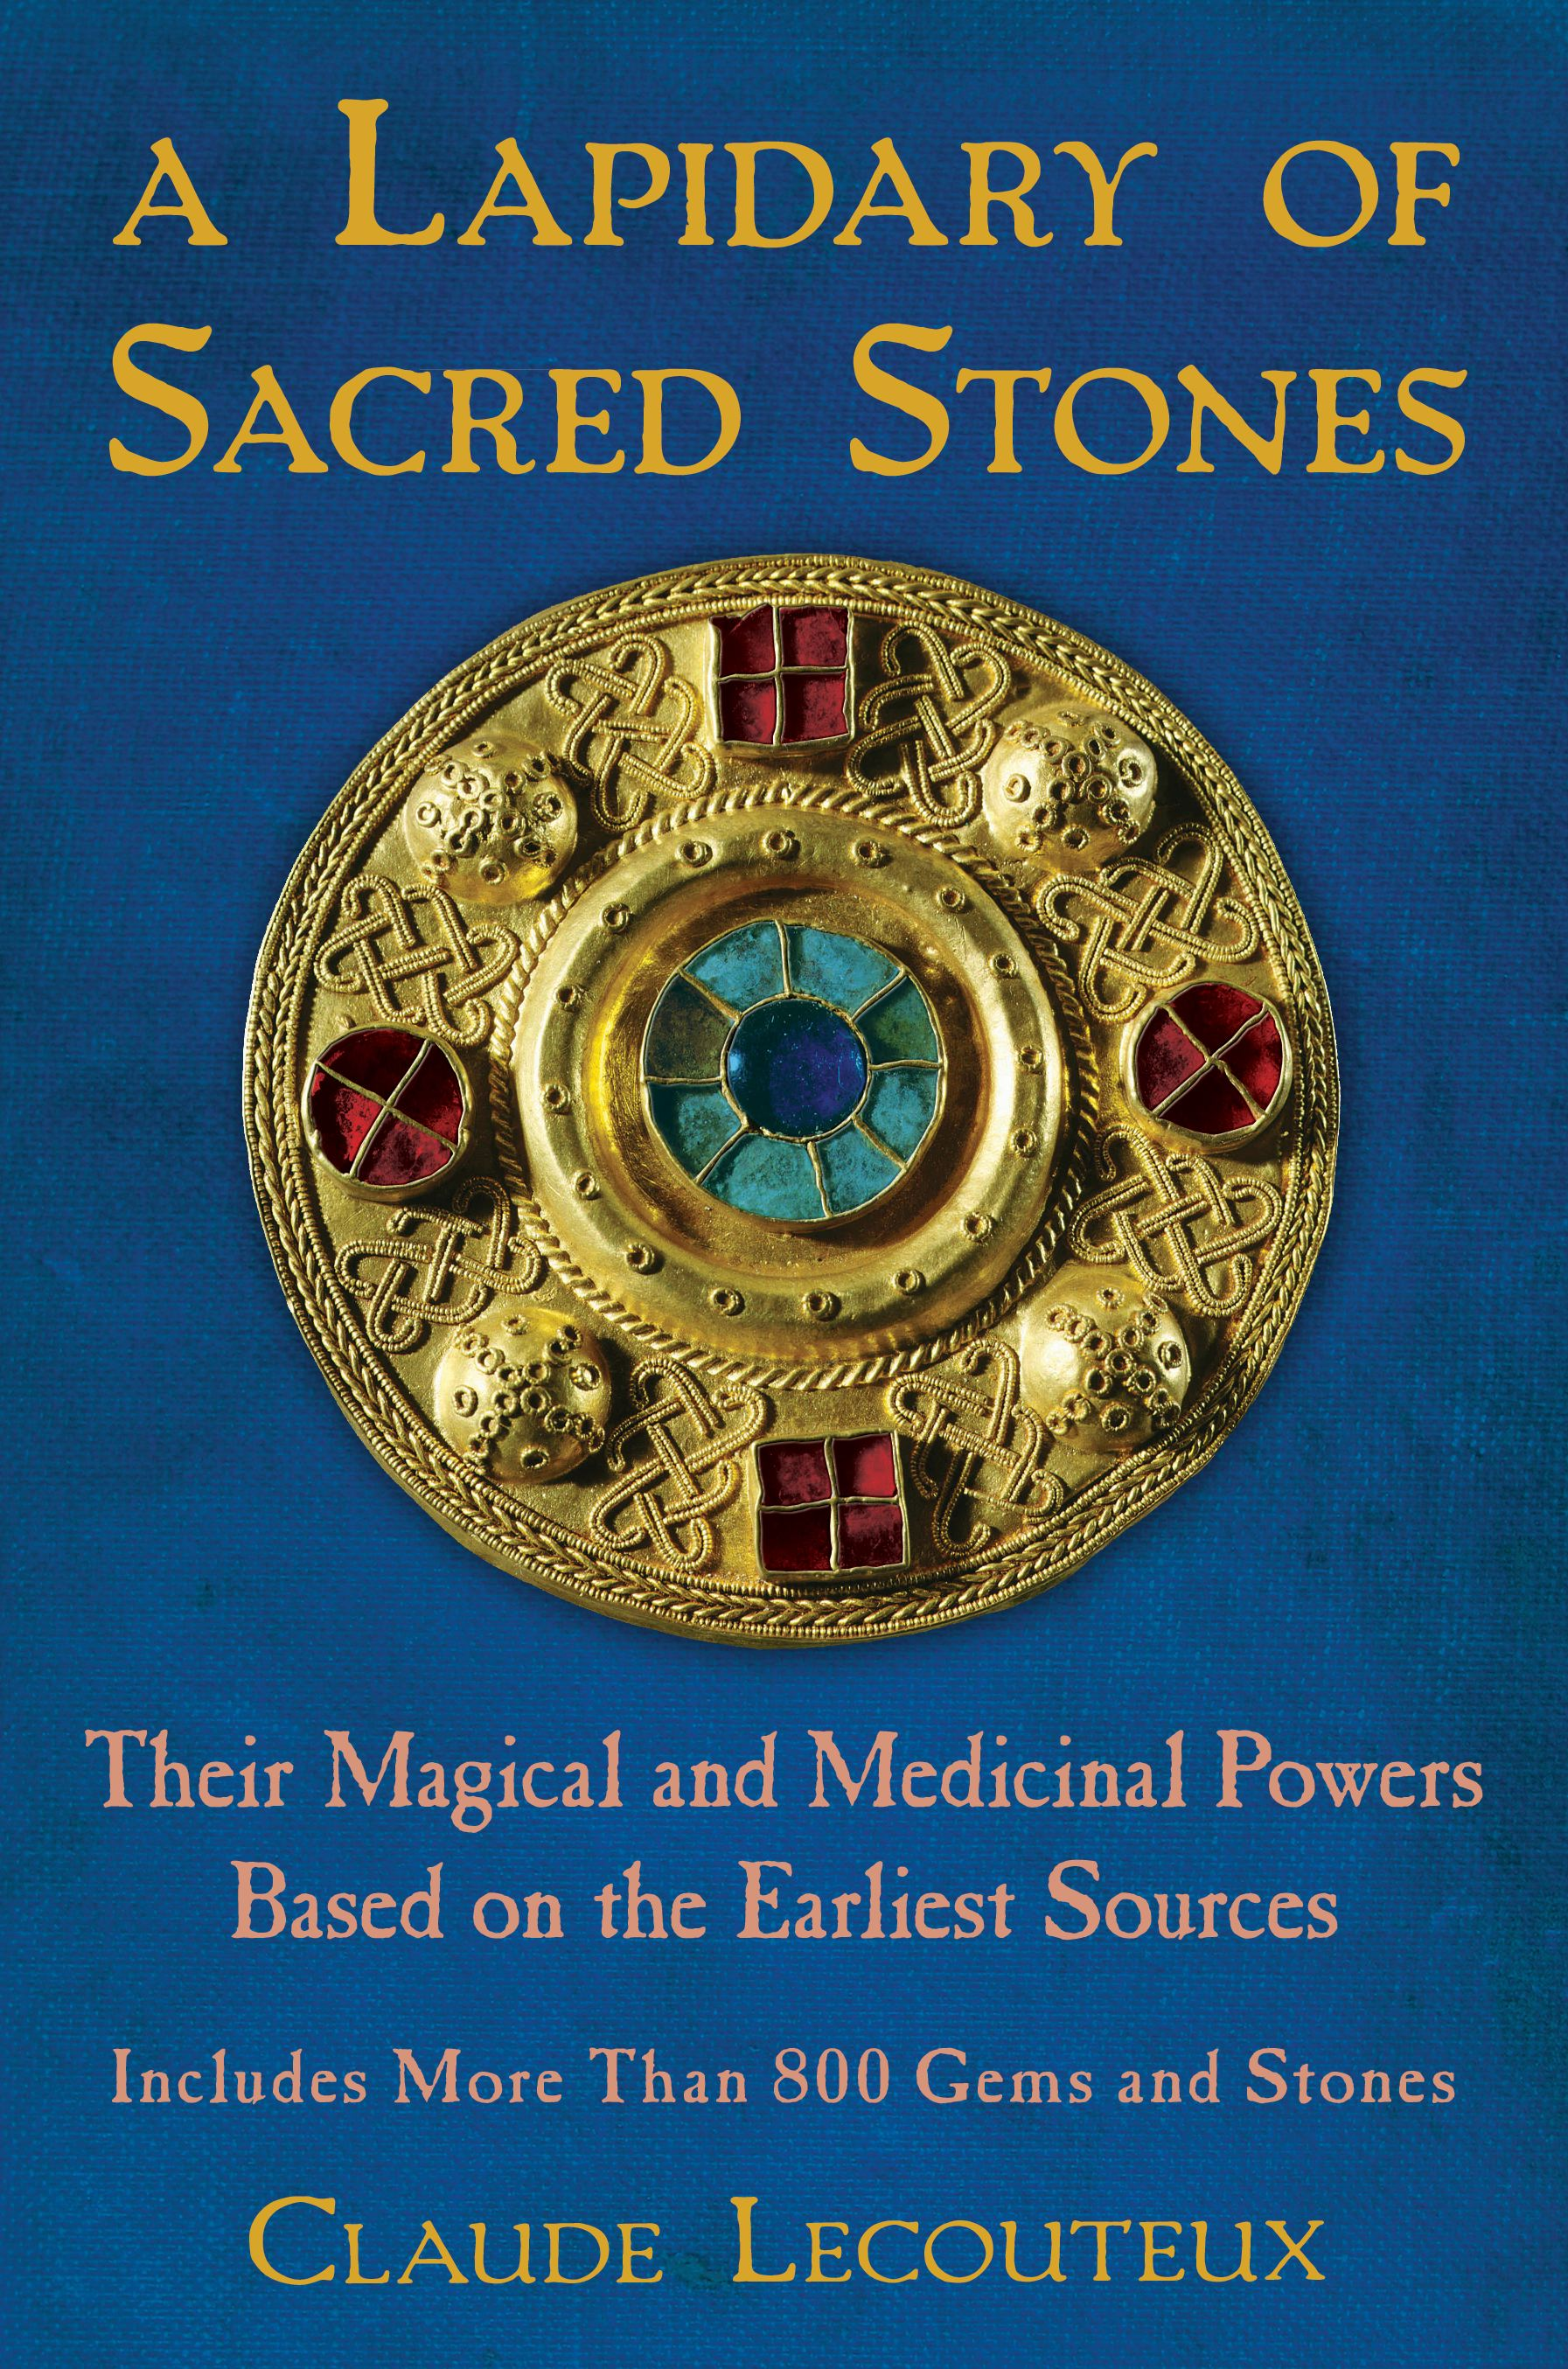 The stone of the scorpion. Magic stones and astrology